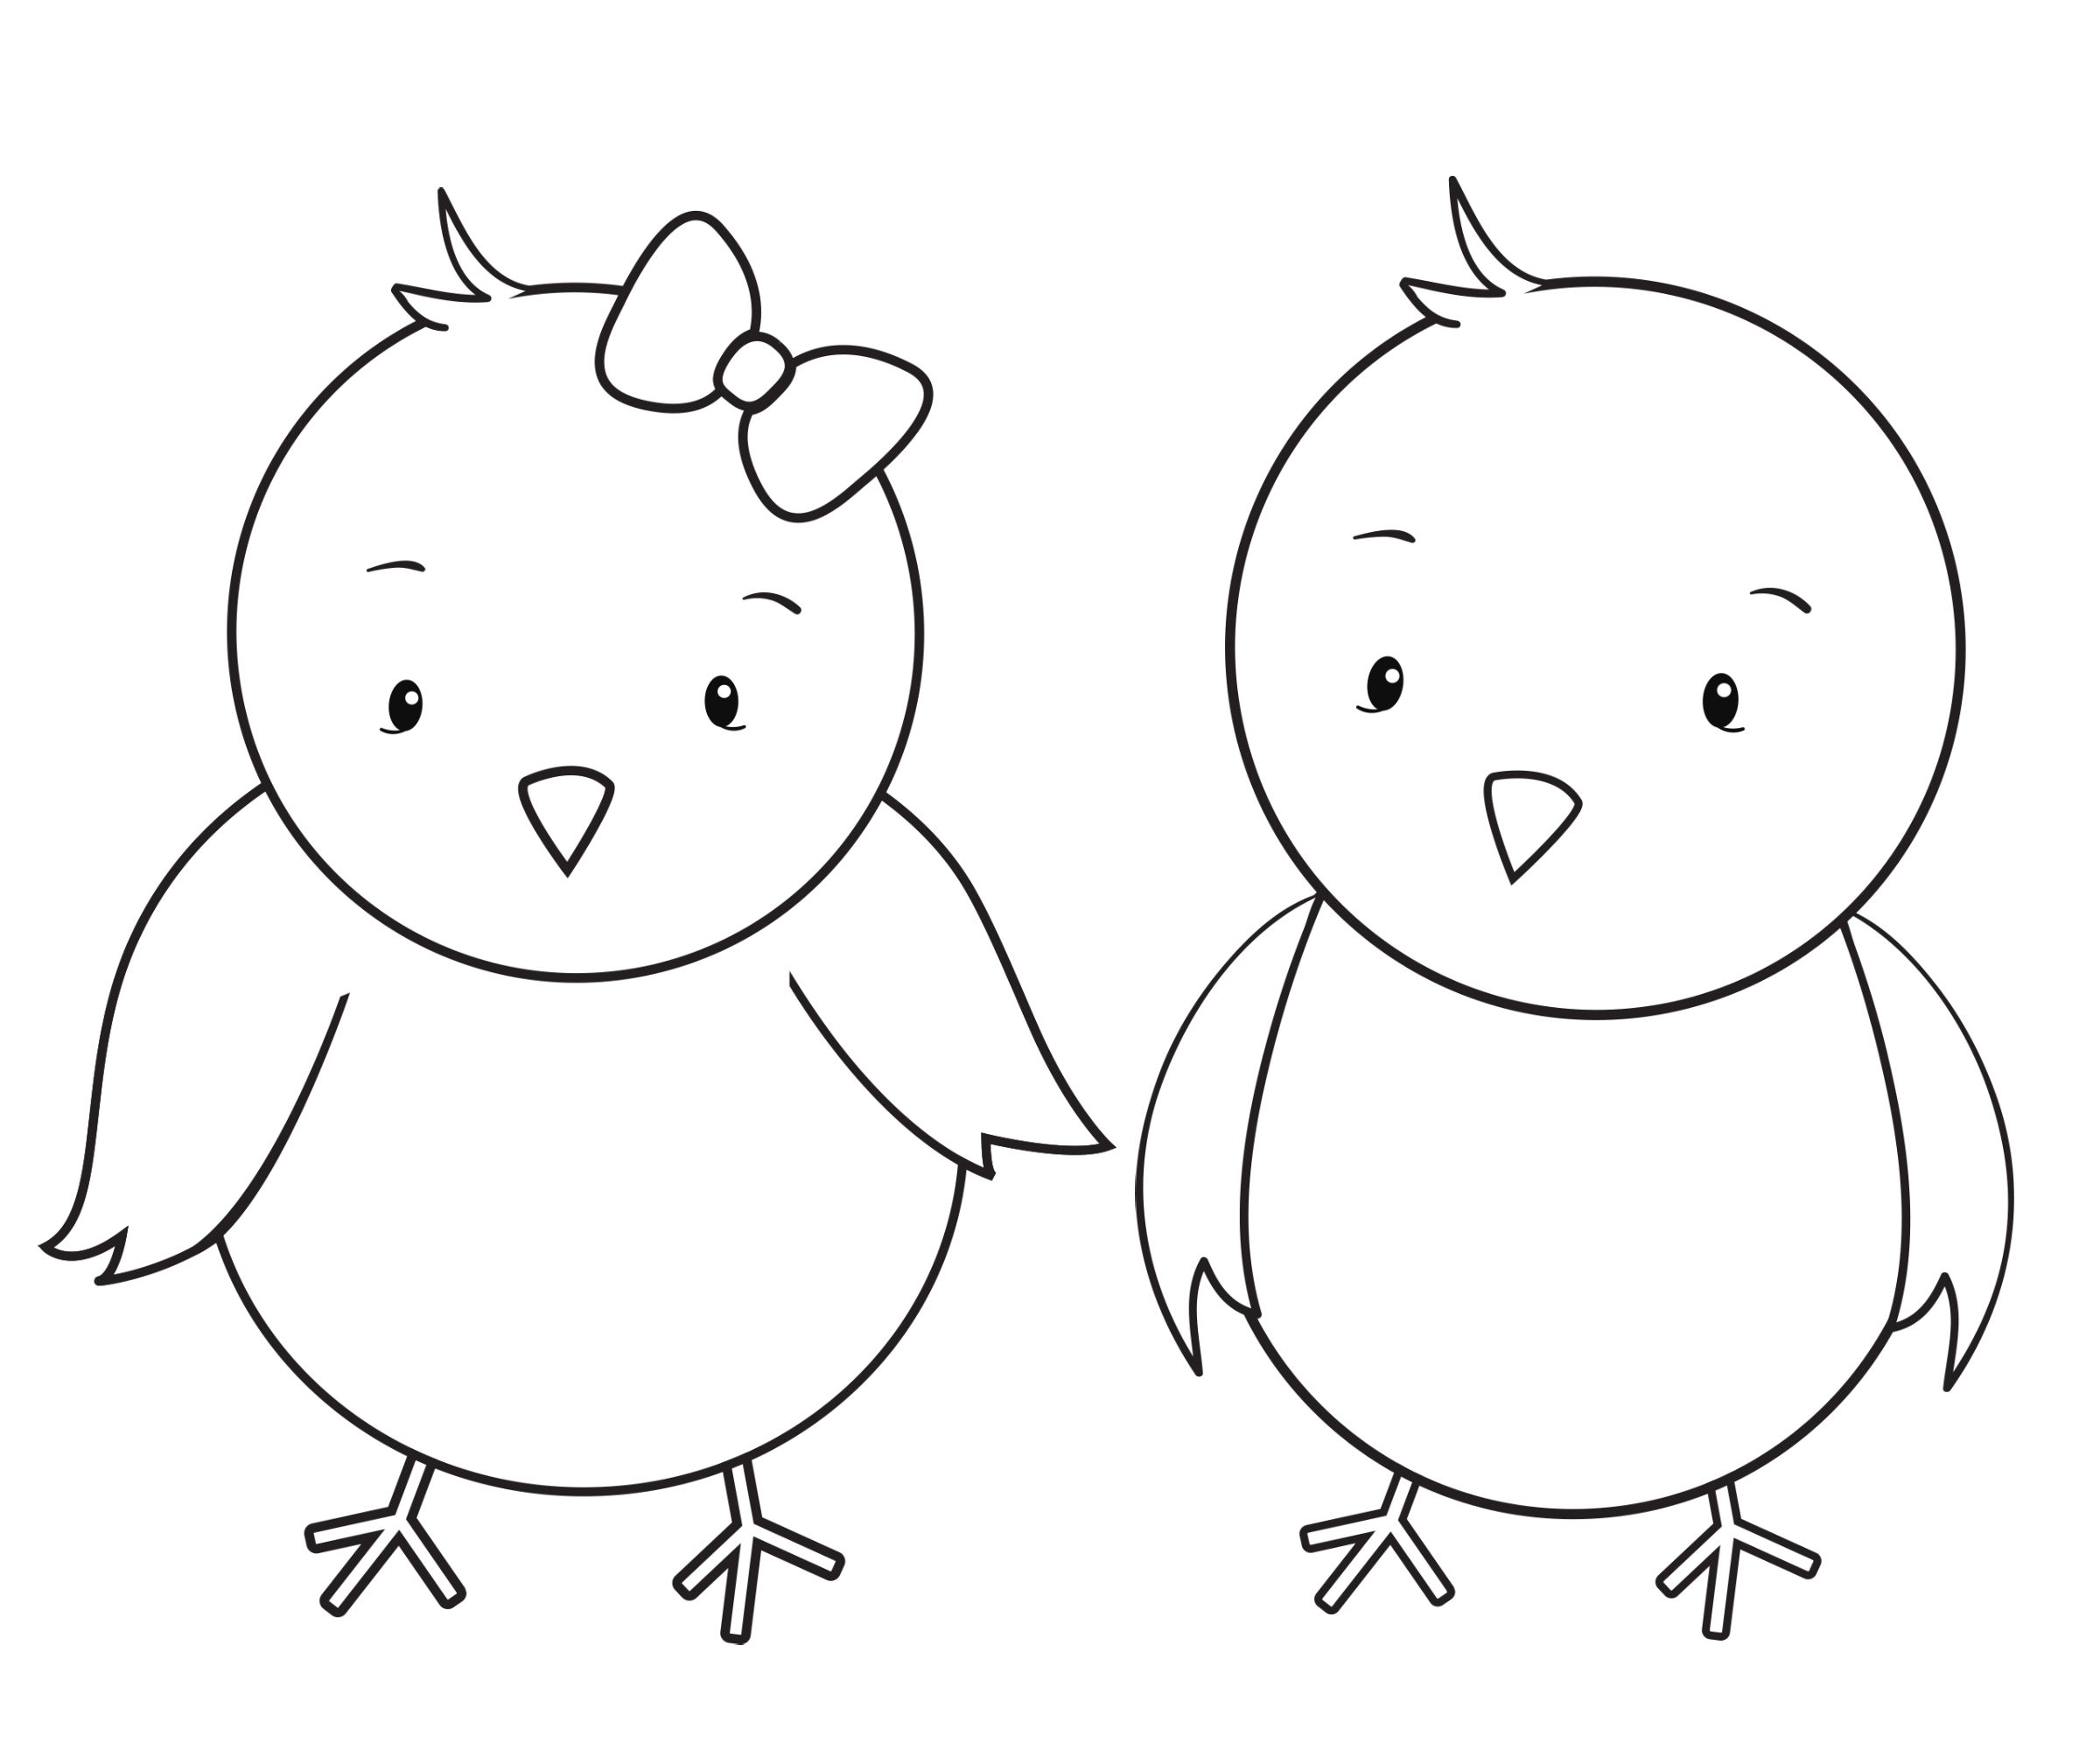 Easter Coloring Pages for Kids | Coloring book,picture for ... | free printable easter coloring pages for toddlers